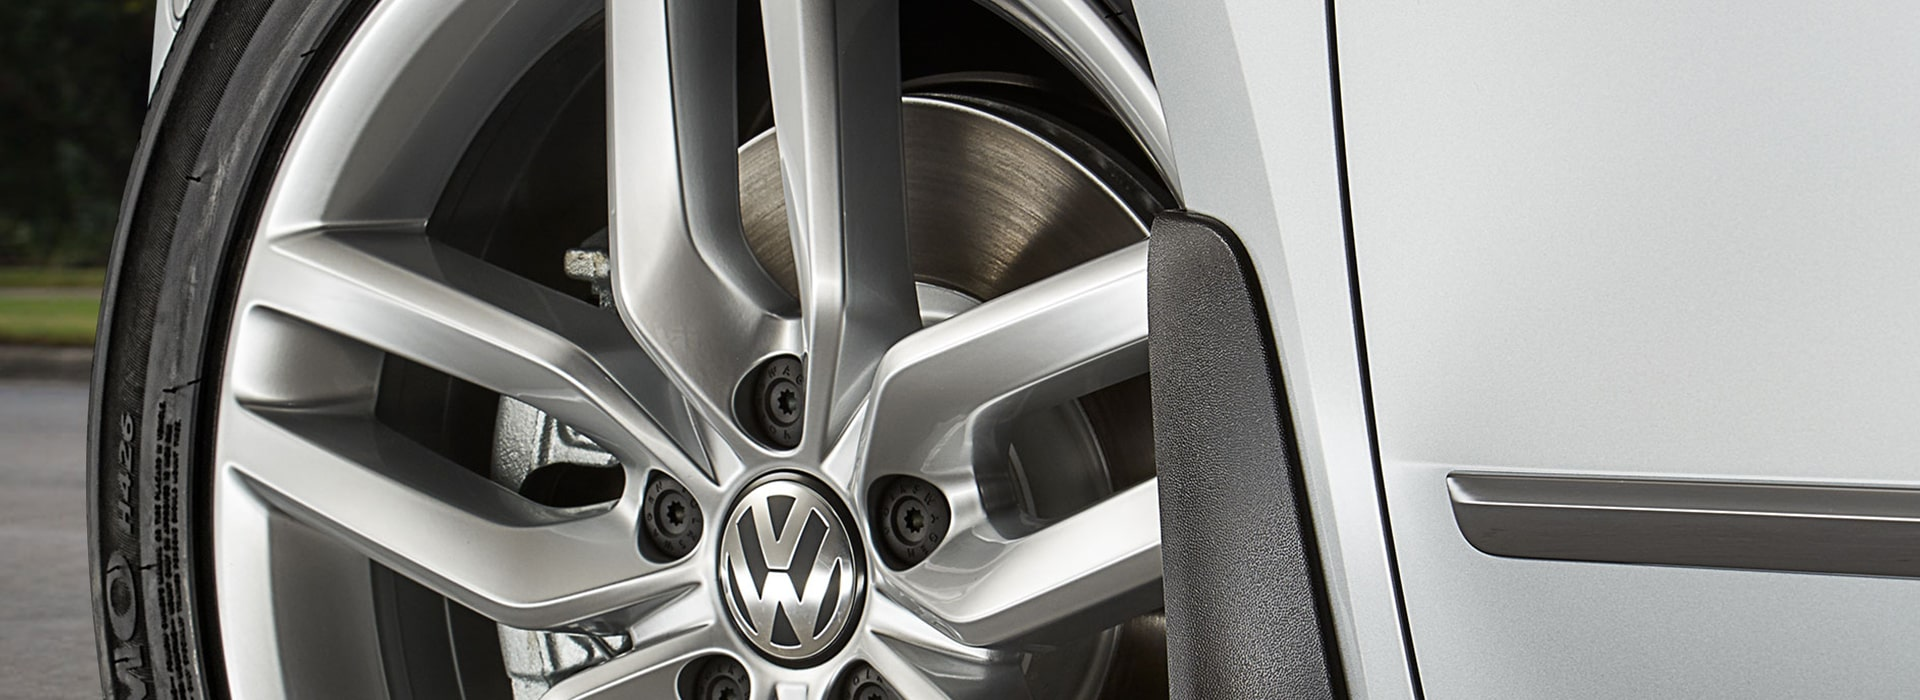 VW Brake Maintenance & Repair Center